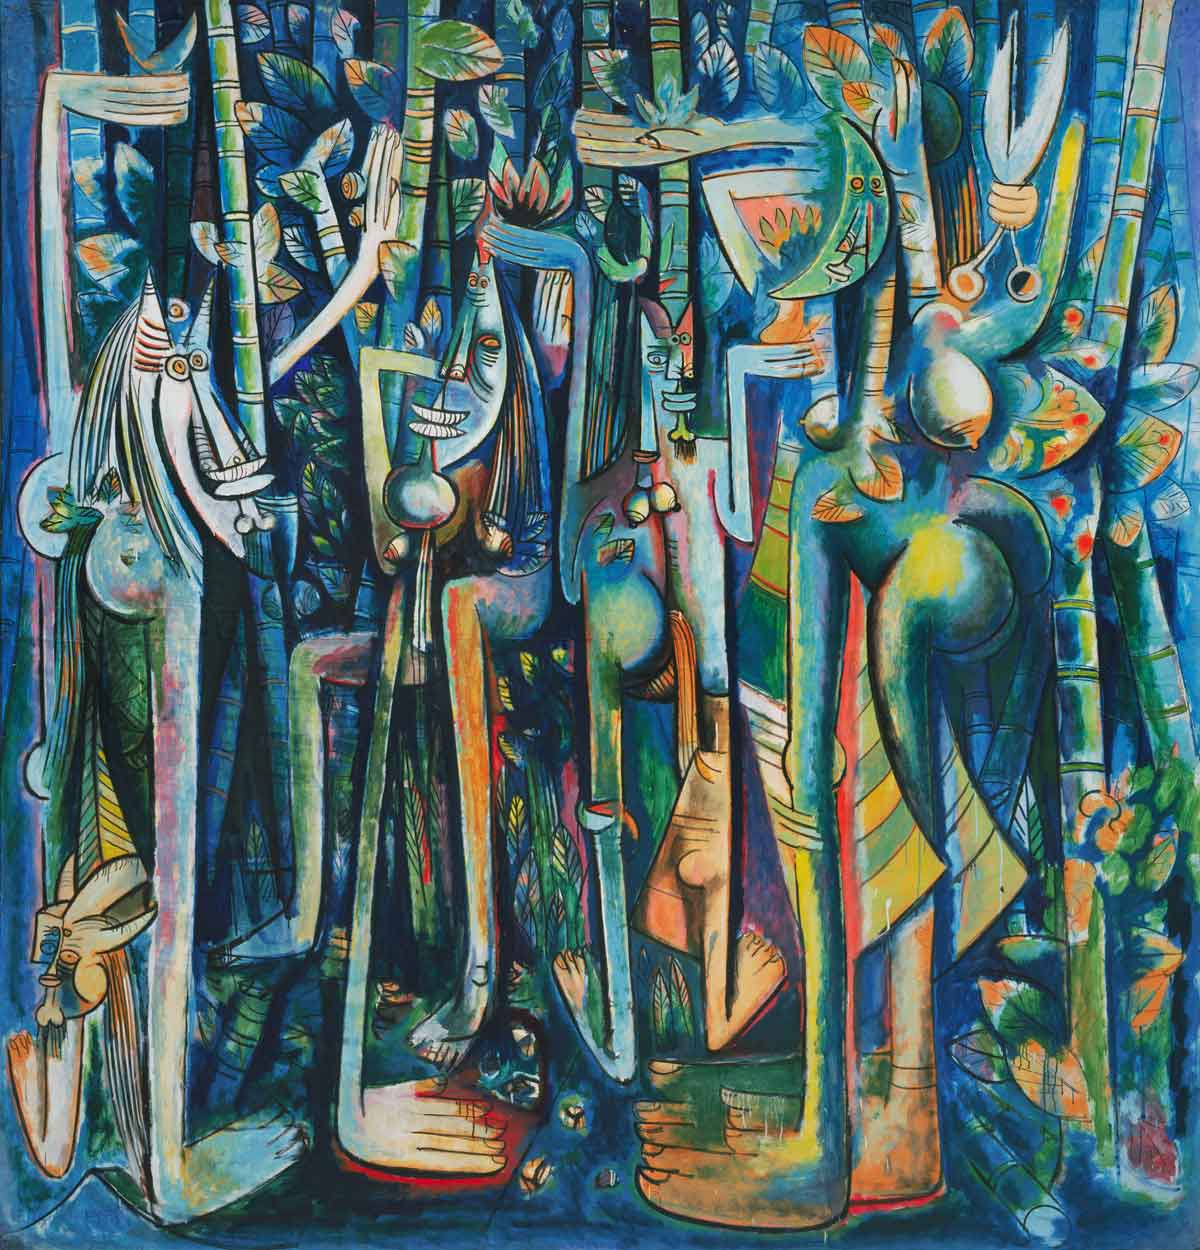 La Jungla (The Jungle 1943), Wifredo Lam